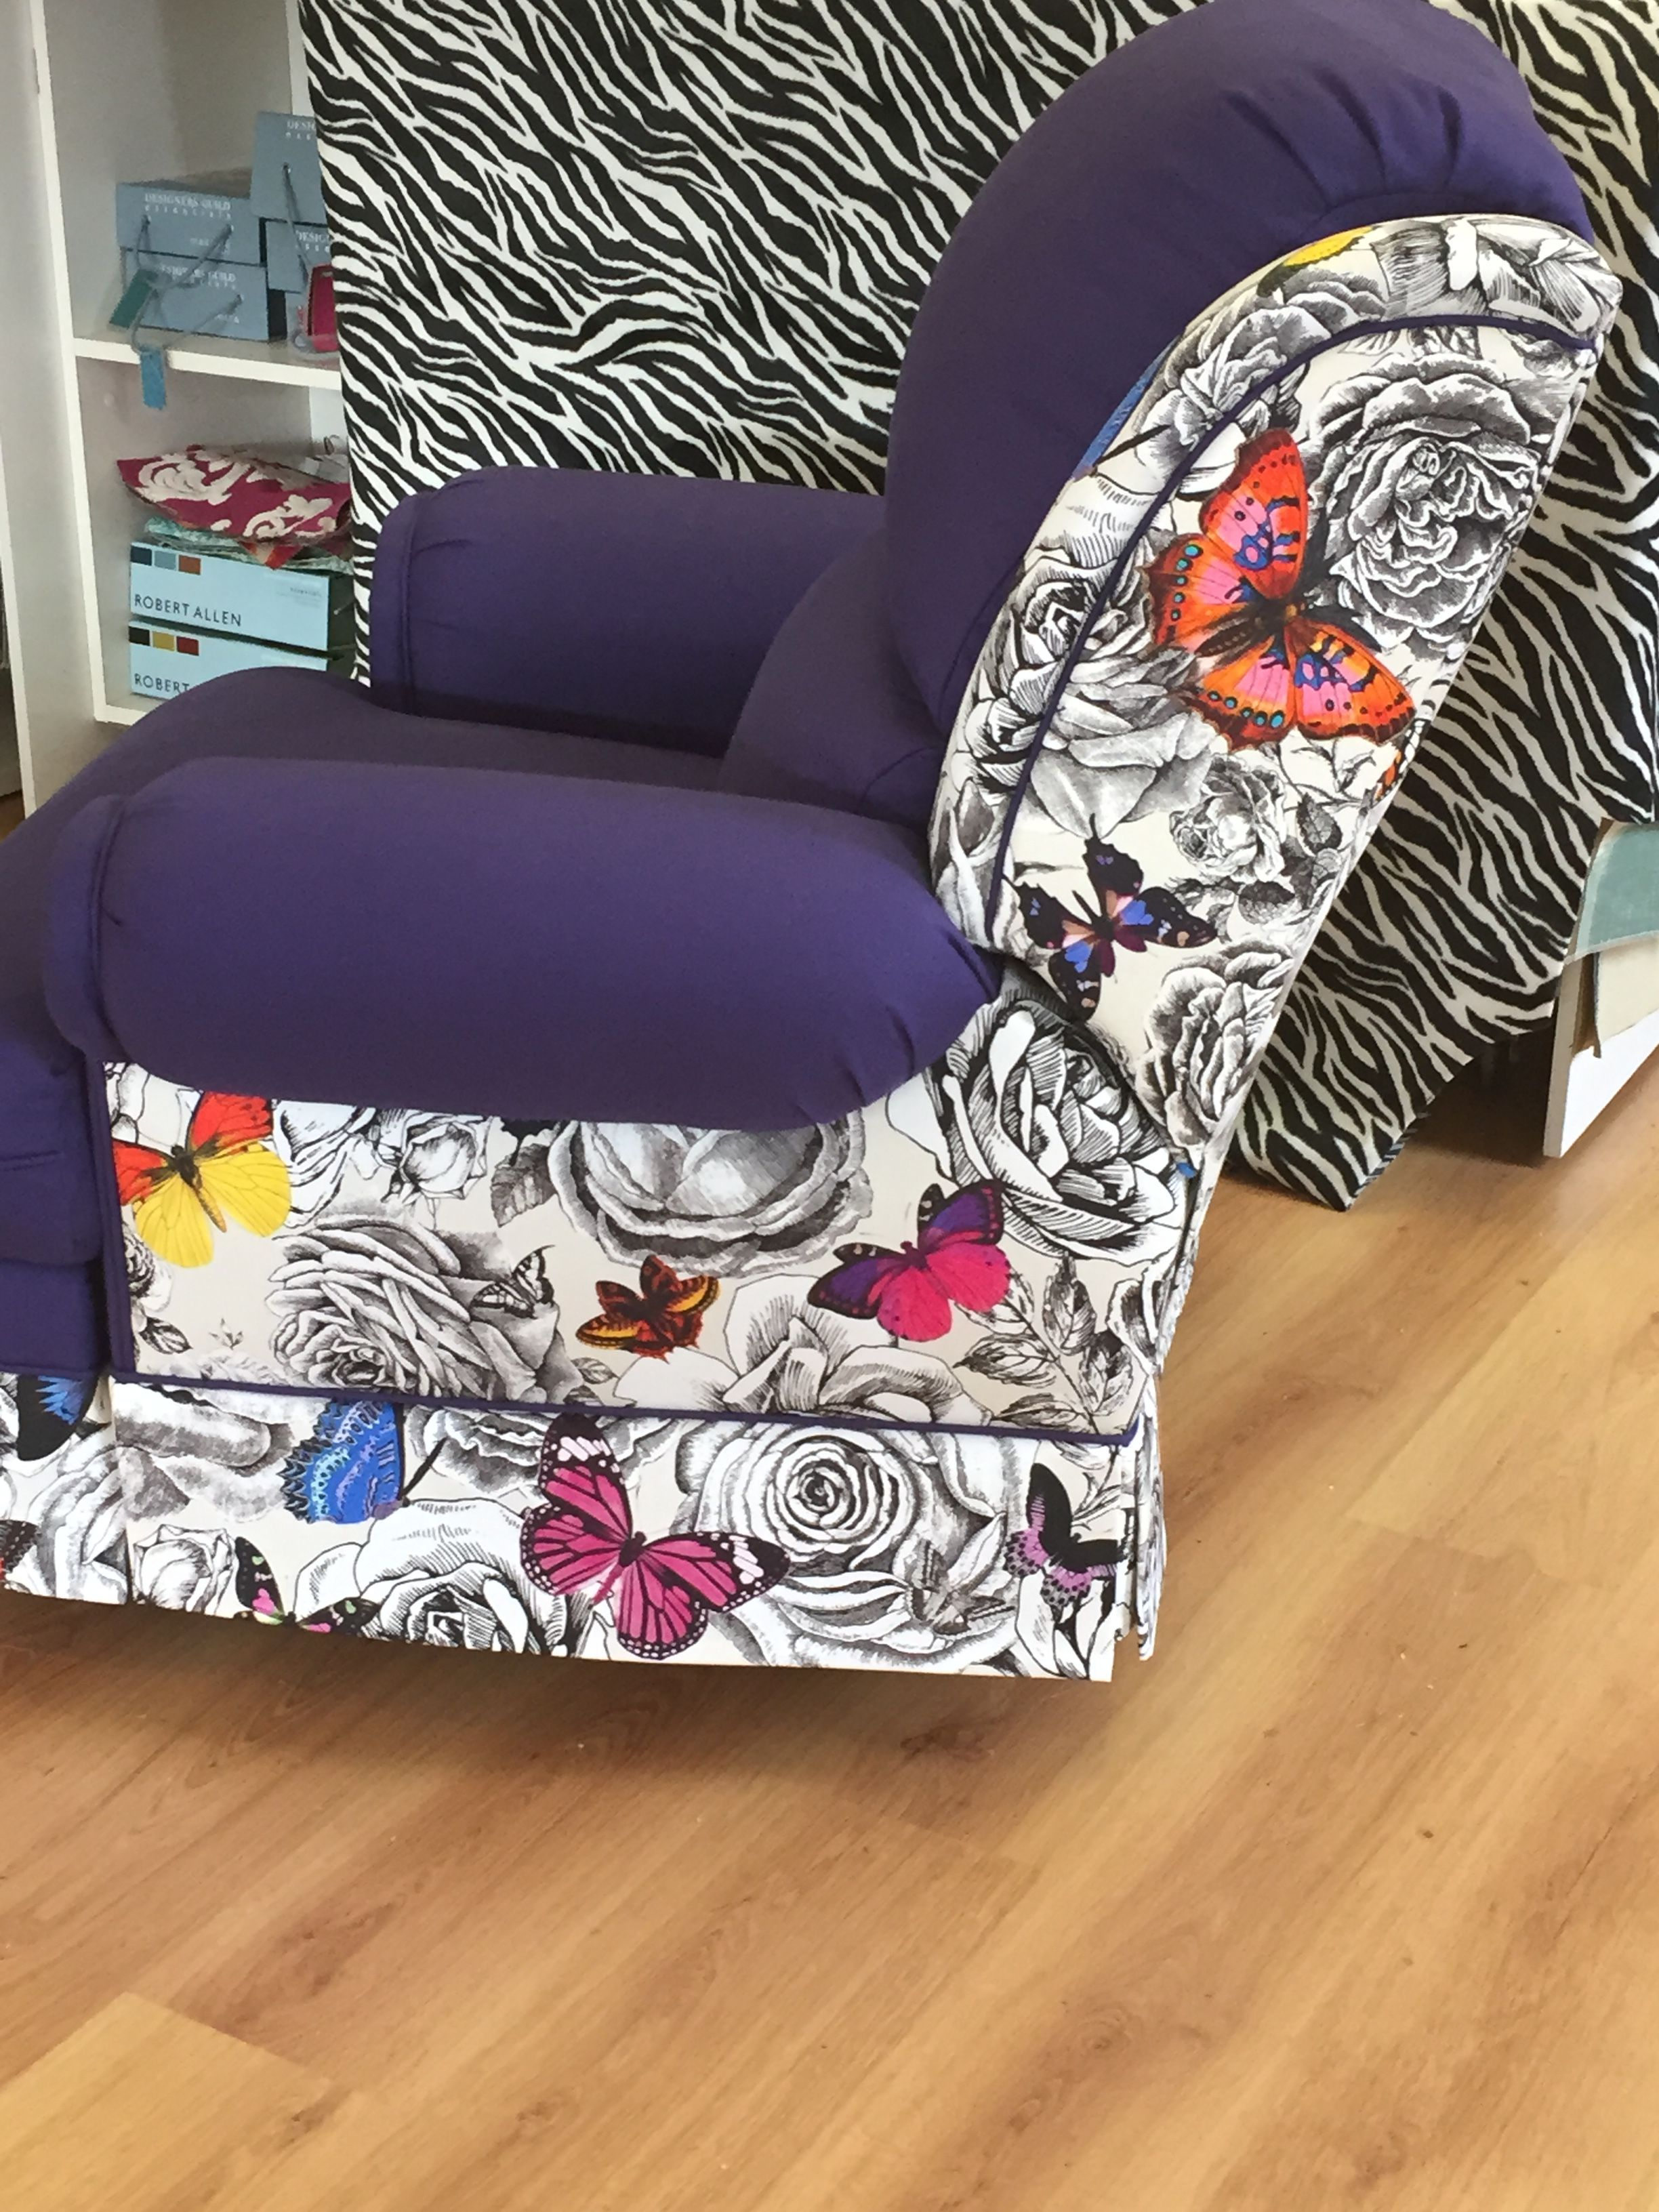 Merveilleux Ou0026L Butterfly Fabric On A Custom Upholstered Recliner Arm Chair